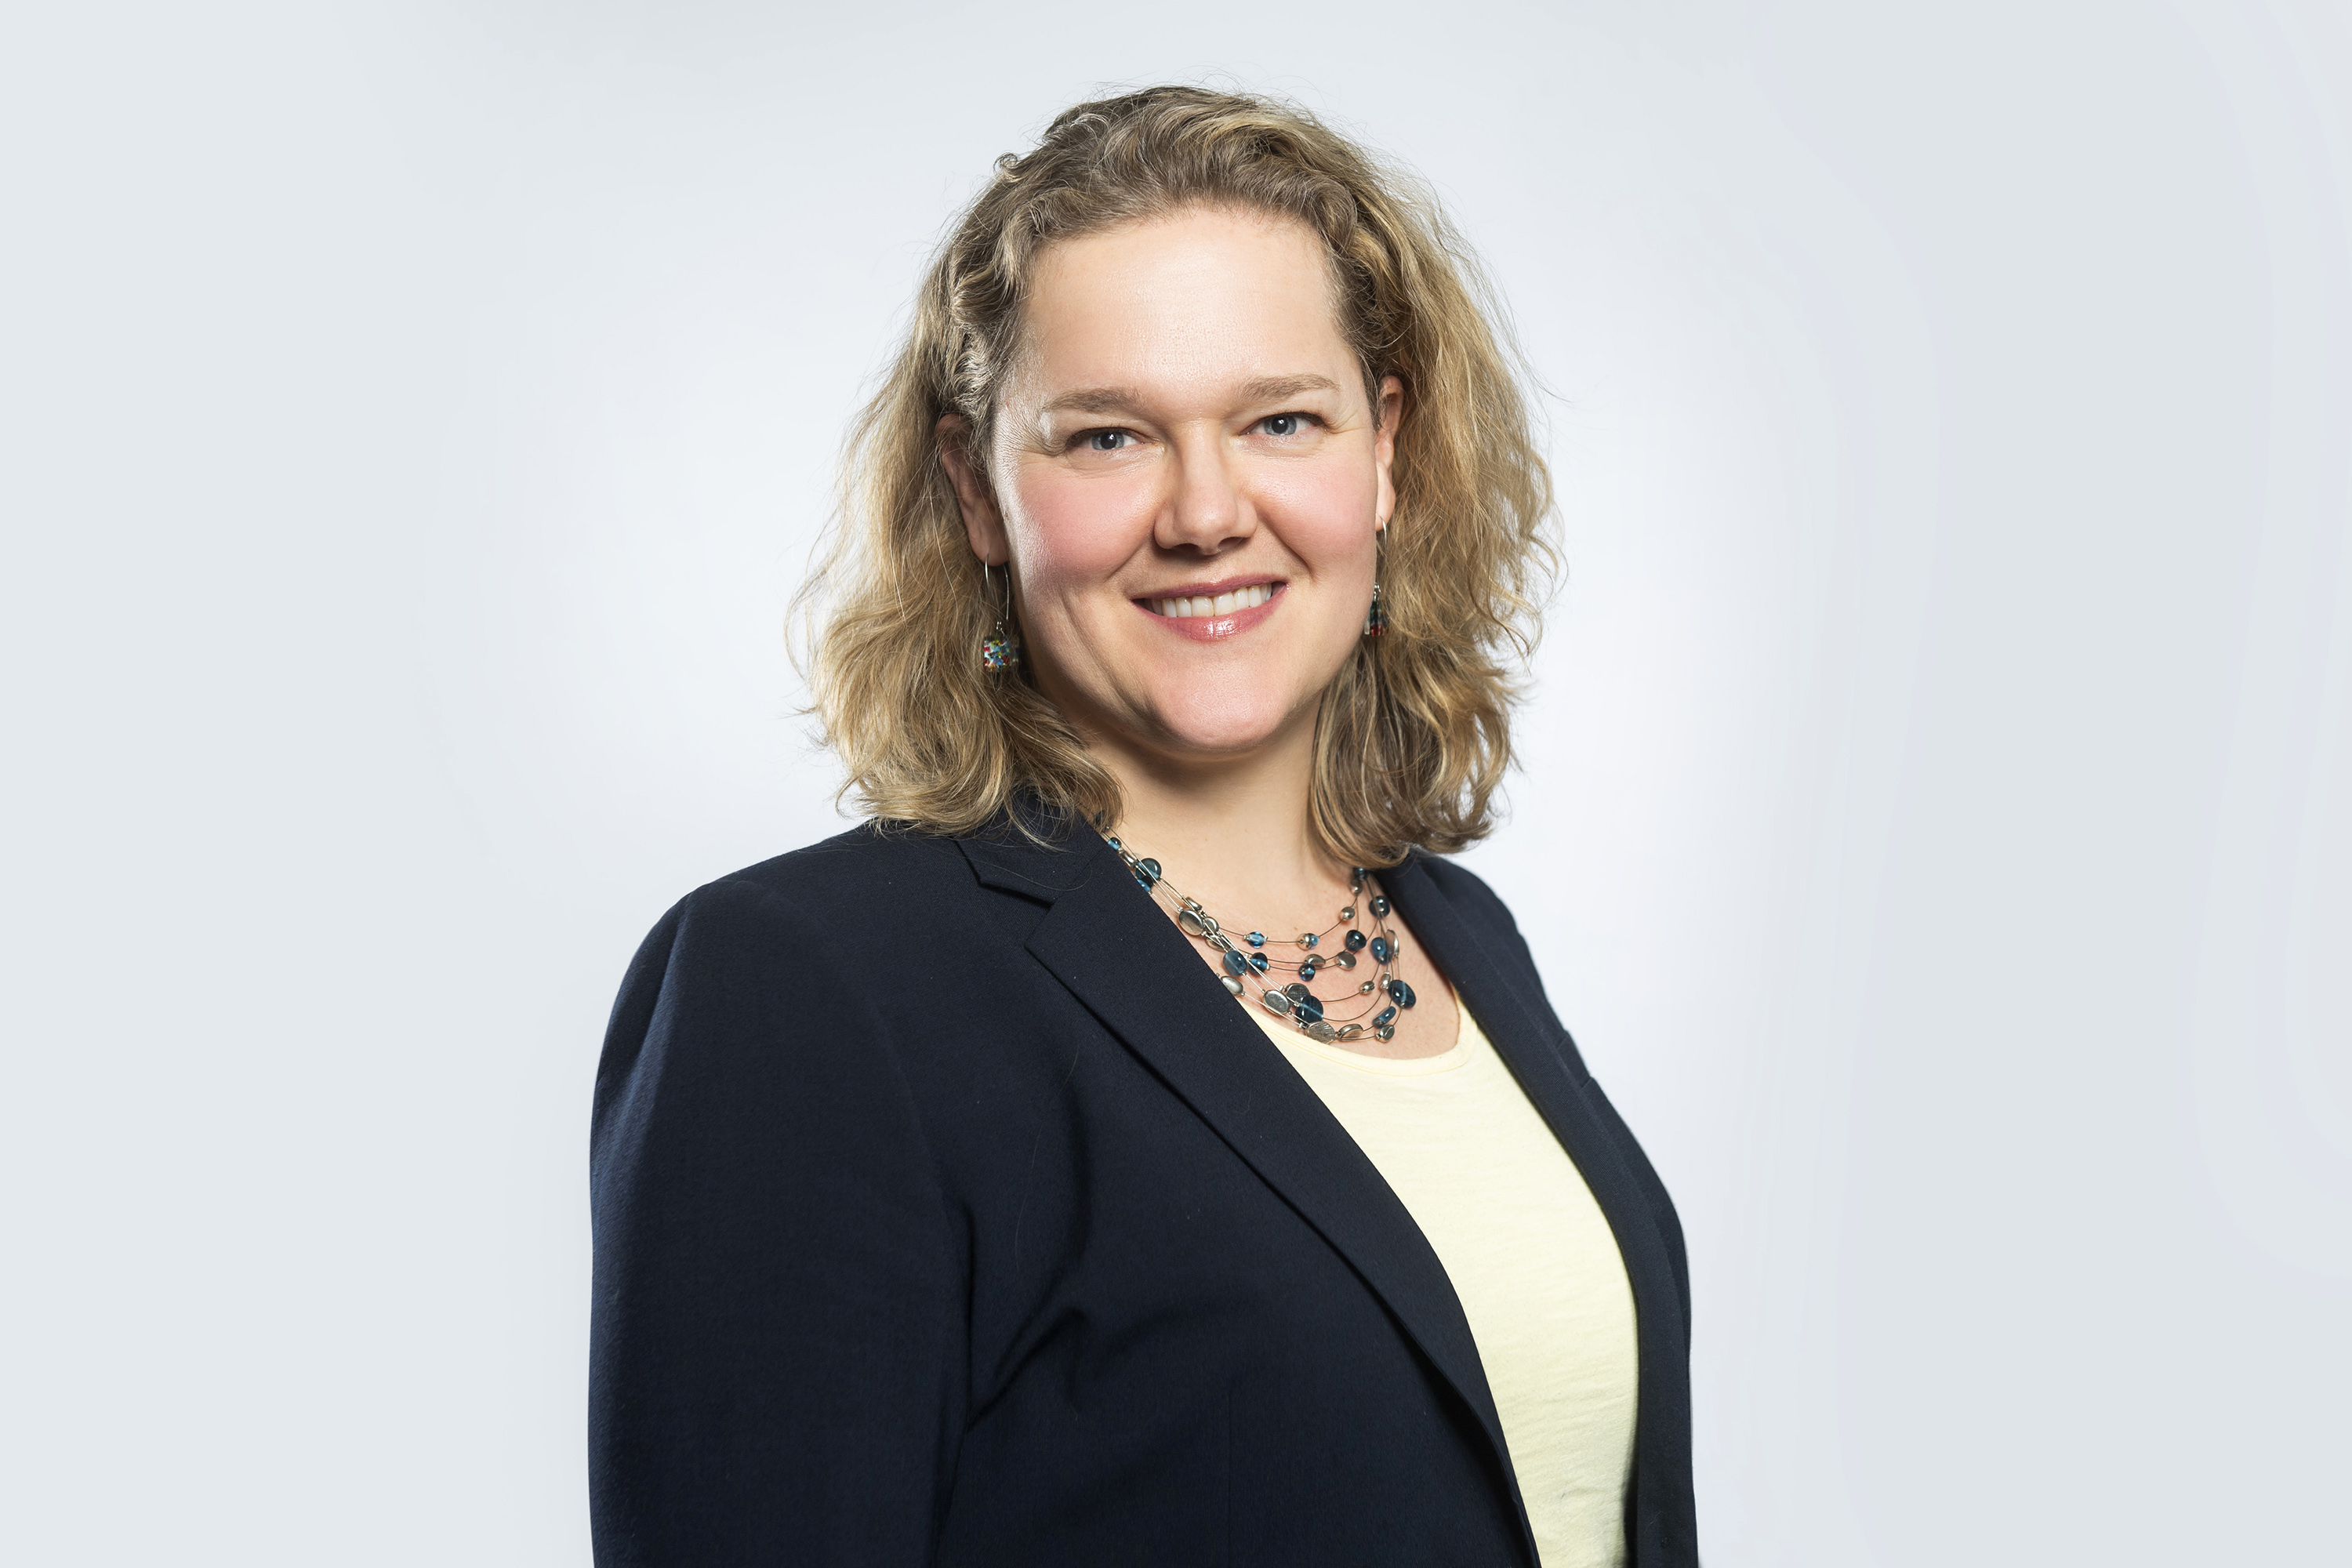 headshot of Laura Visser, CEO